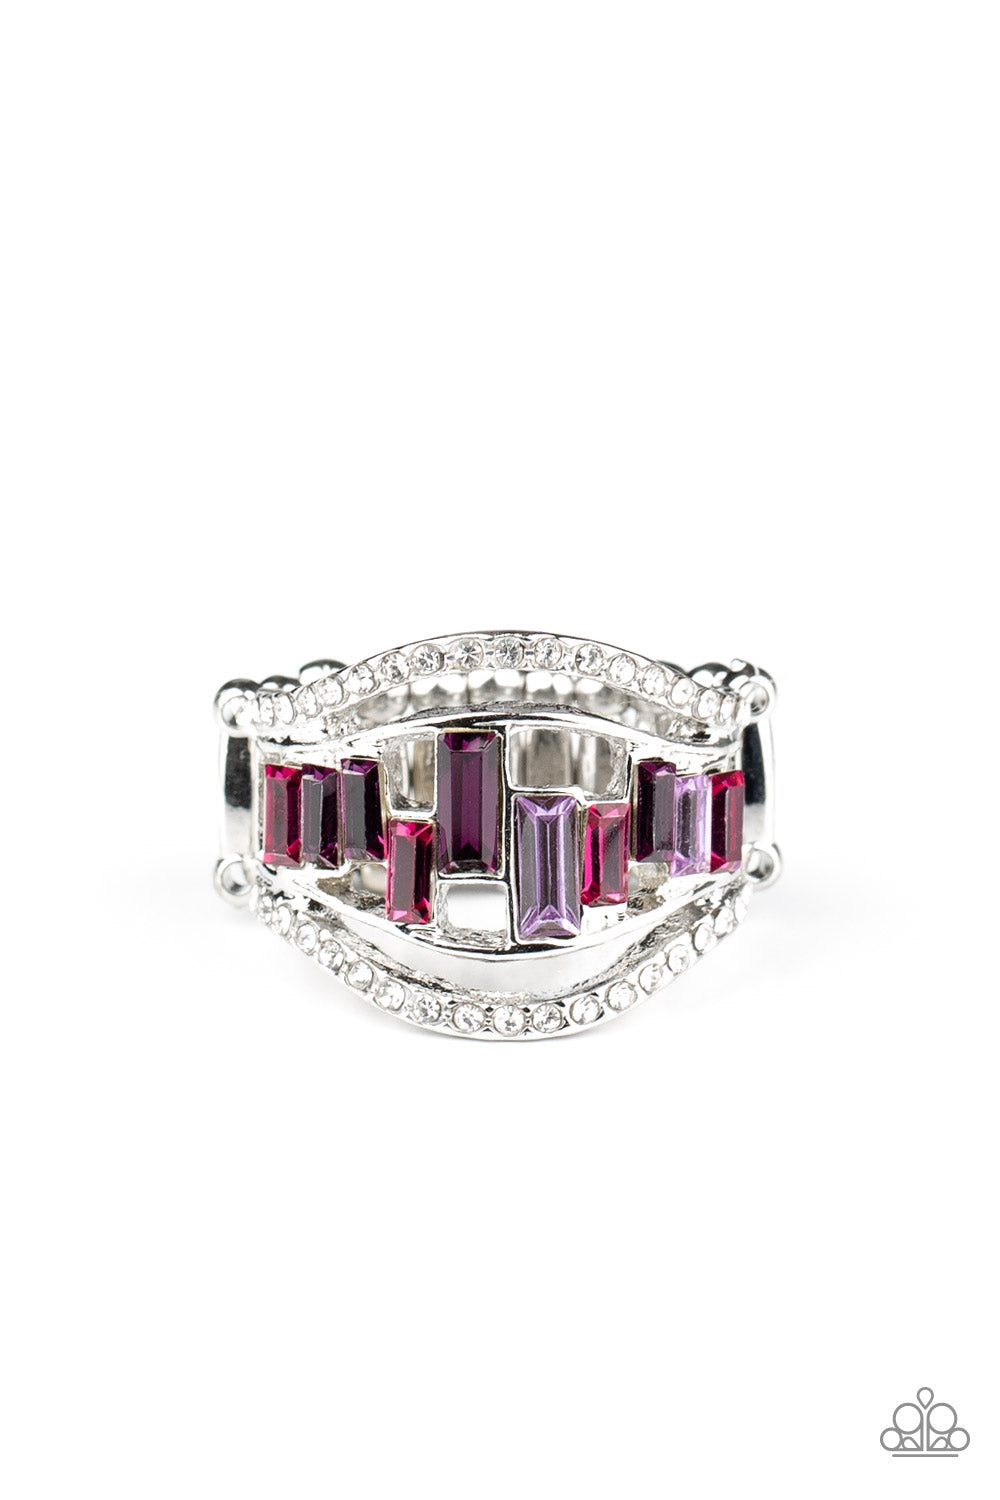 Paparazzi Treasure Chest Charm - Purple Ring